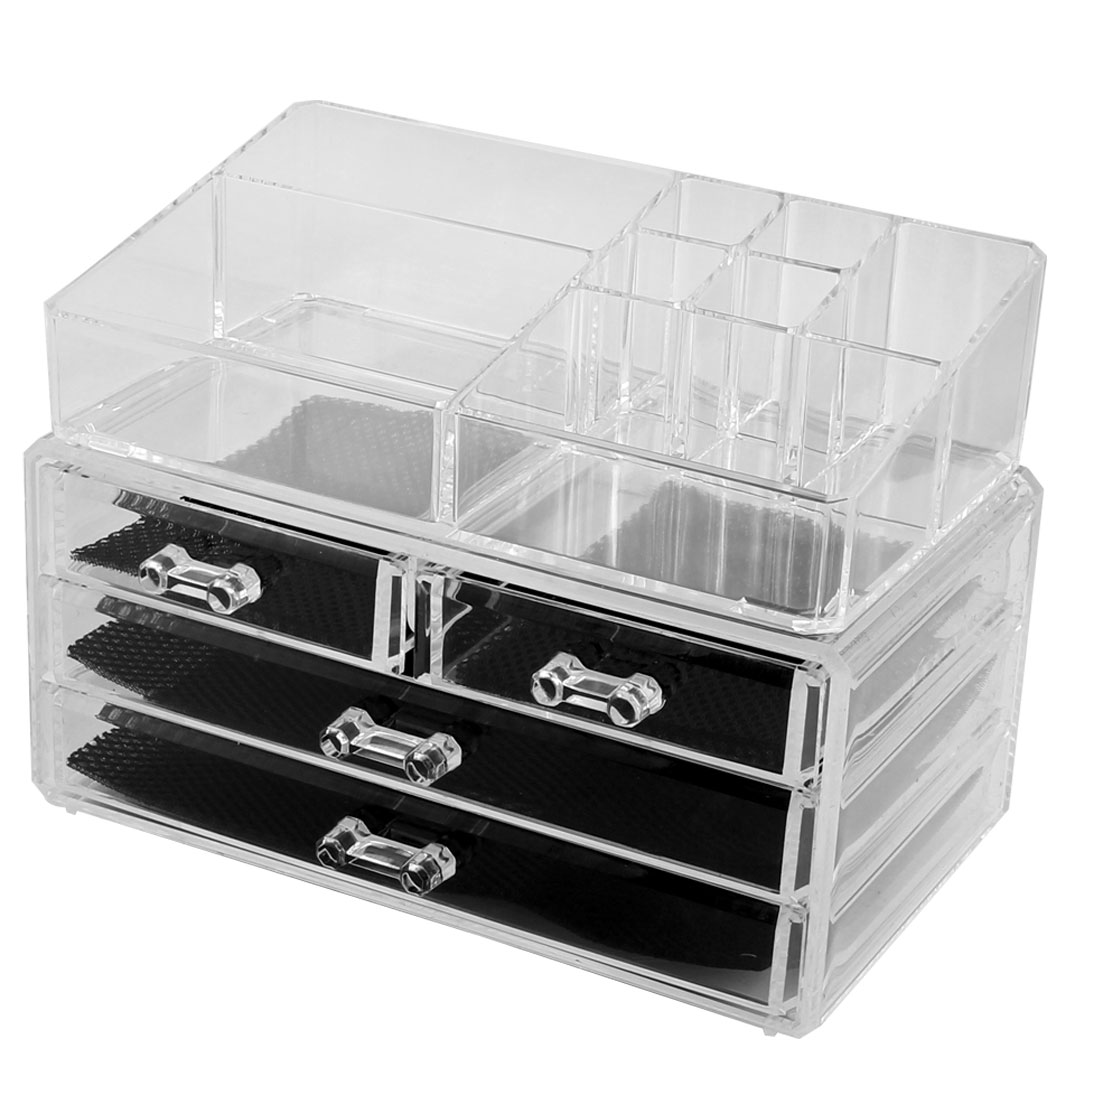 Home Bedroom Acrylic Multichamber Jewelry Makeup Storage Organizer Set 2 in 1